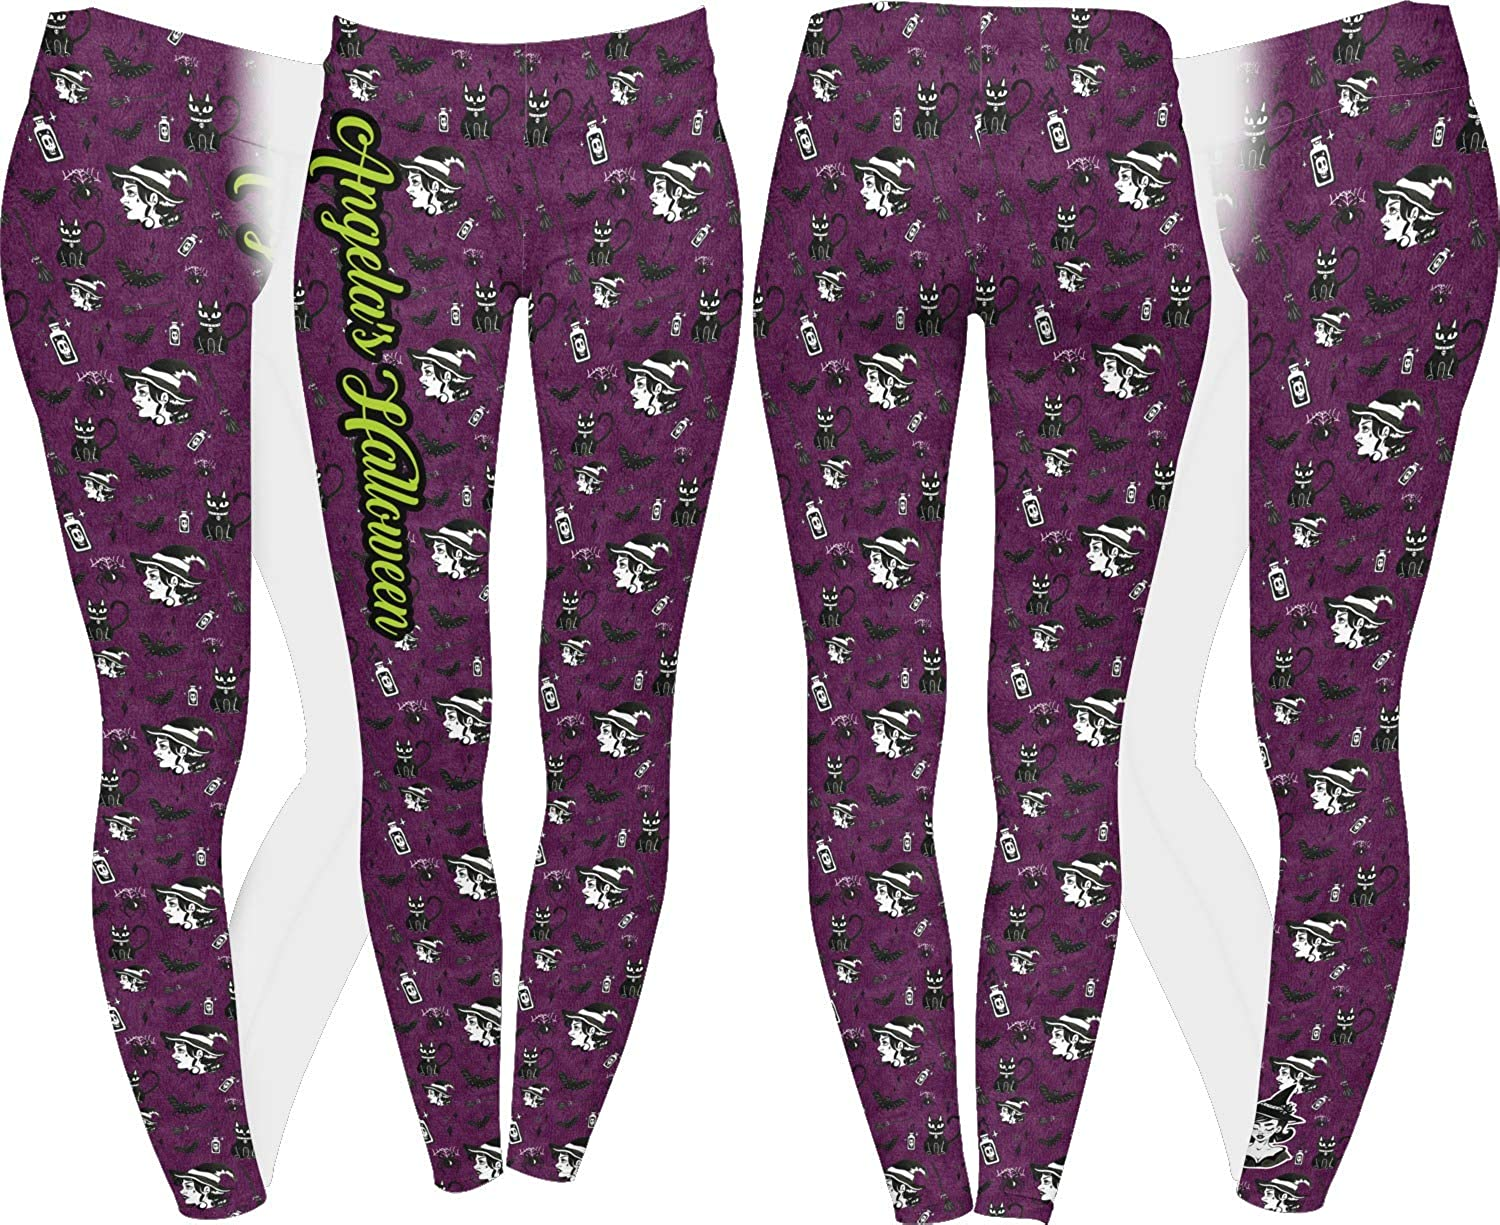 Personalized Witches On Halloween Ladies Leggings